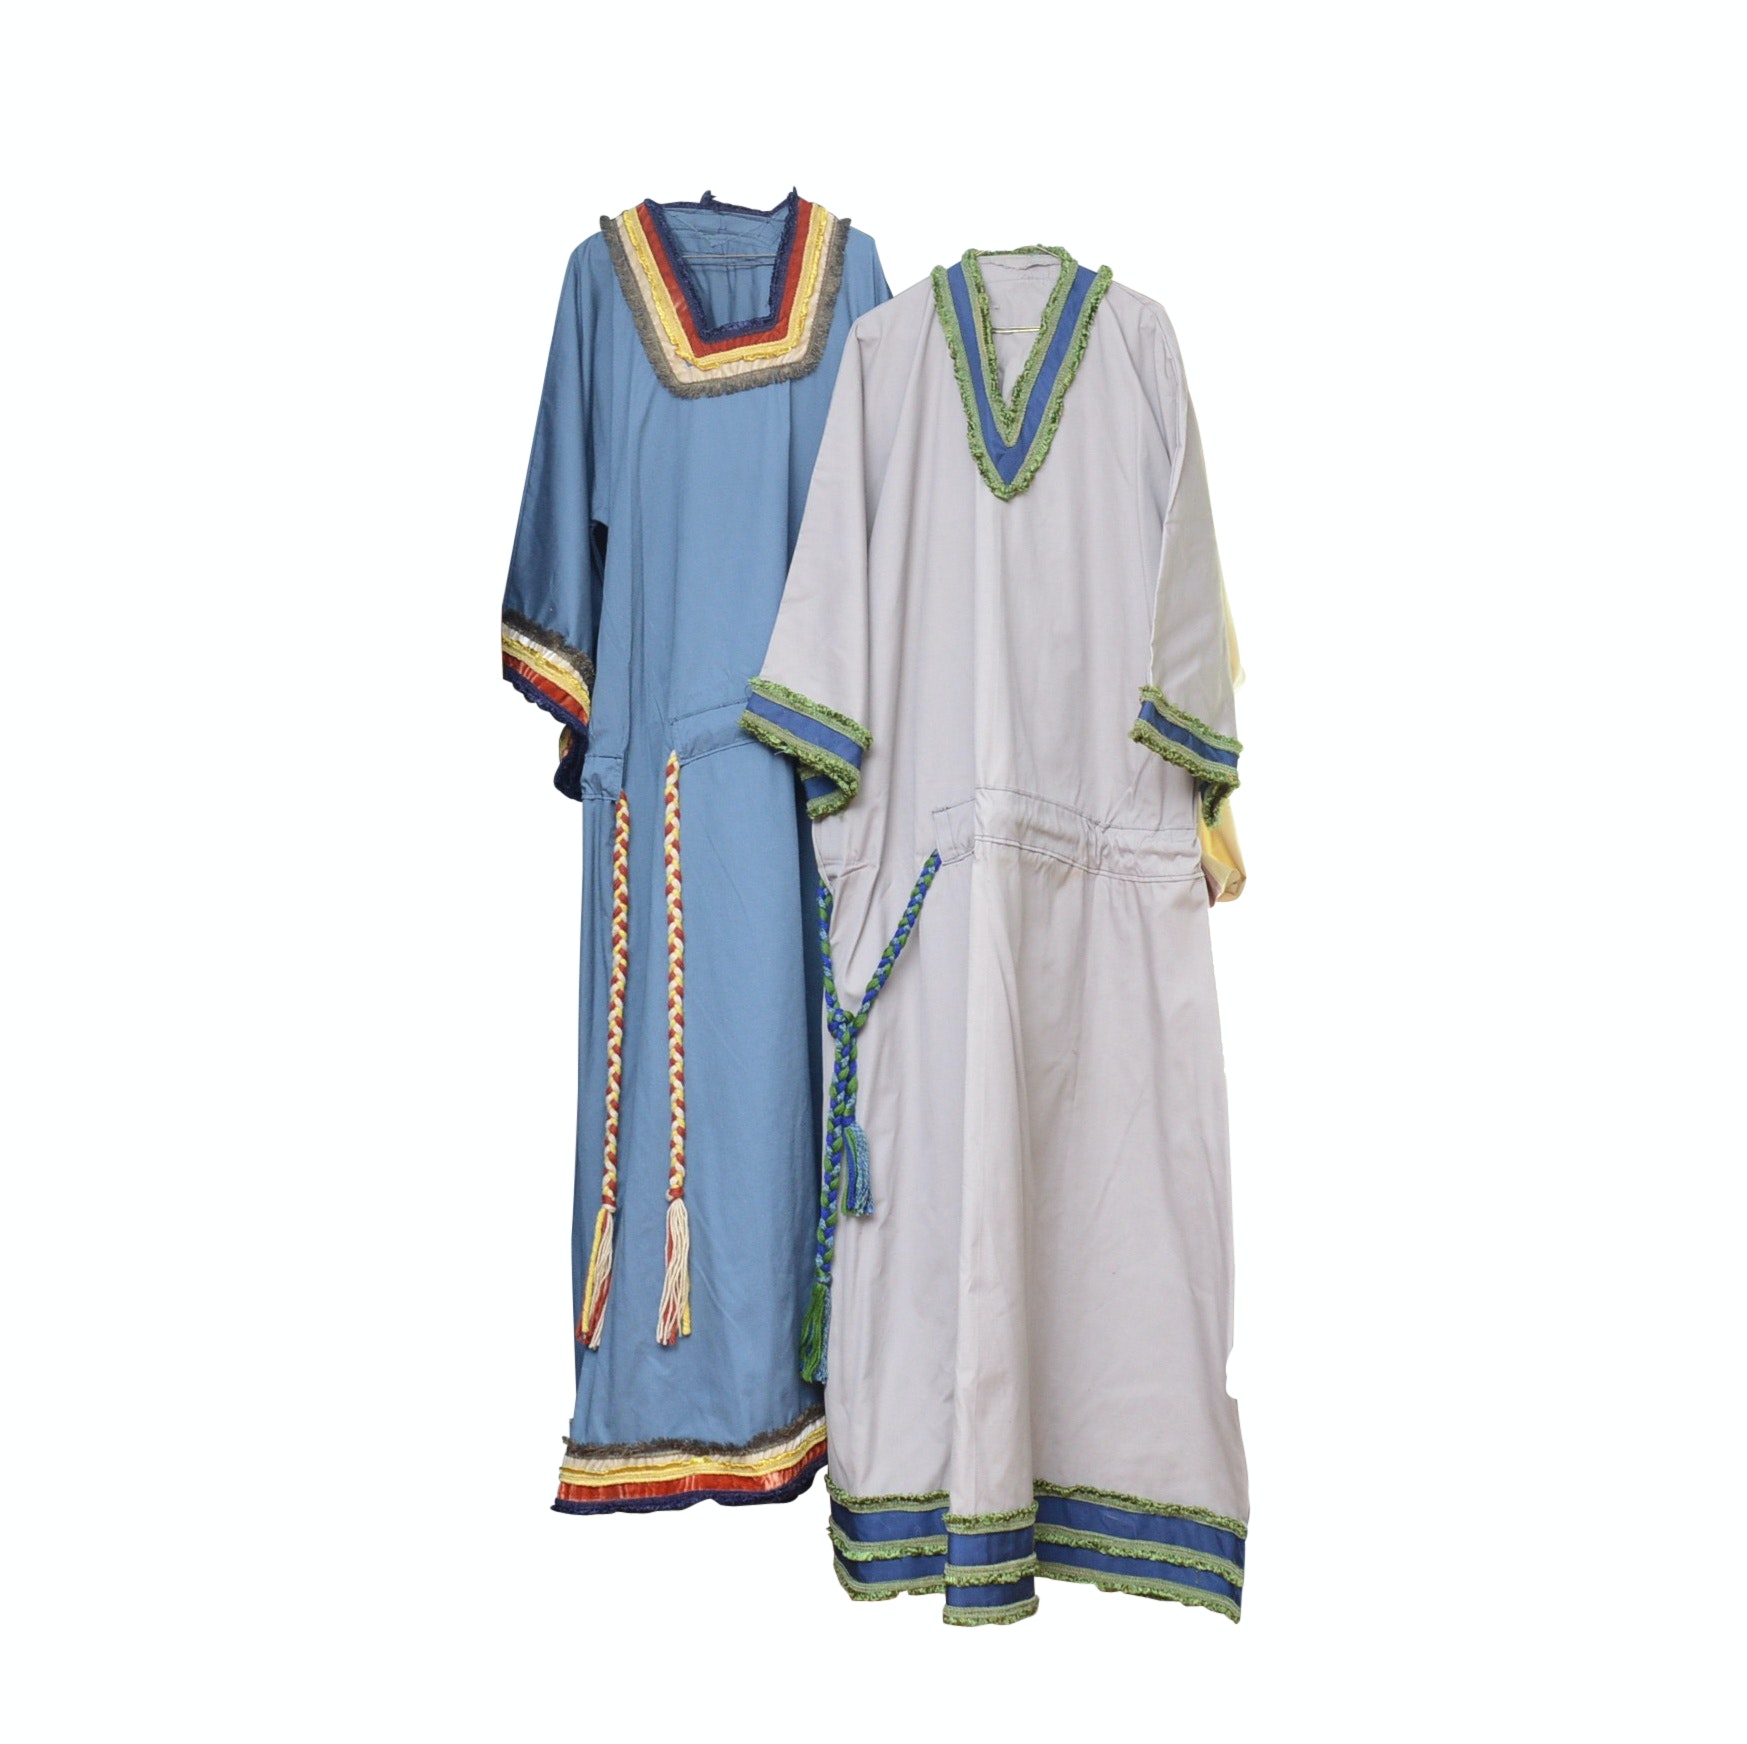 Pair of Handmade Drawstring Tunic Dresses